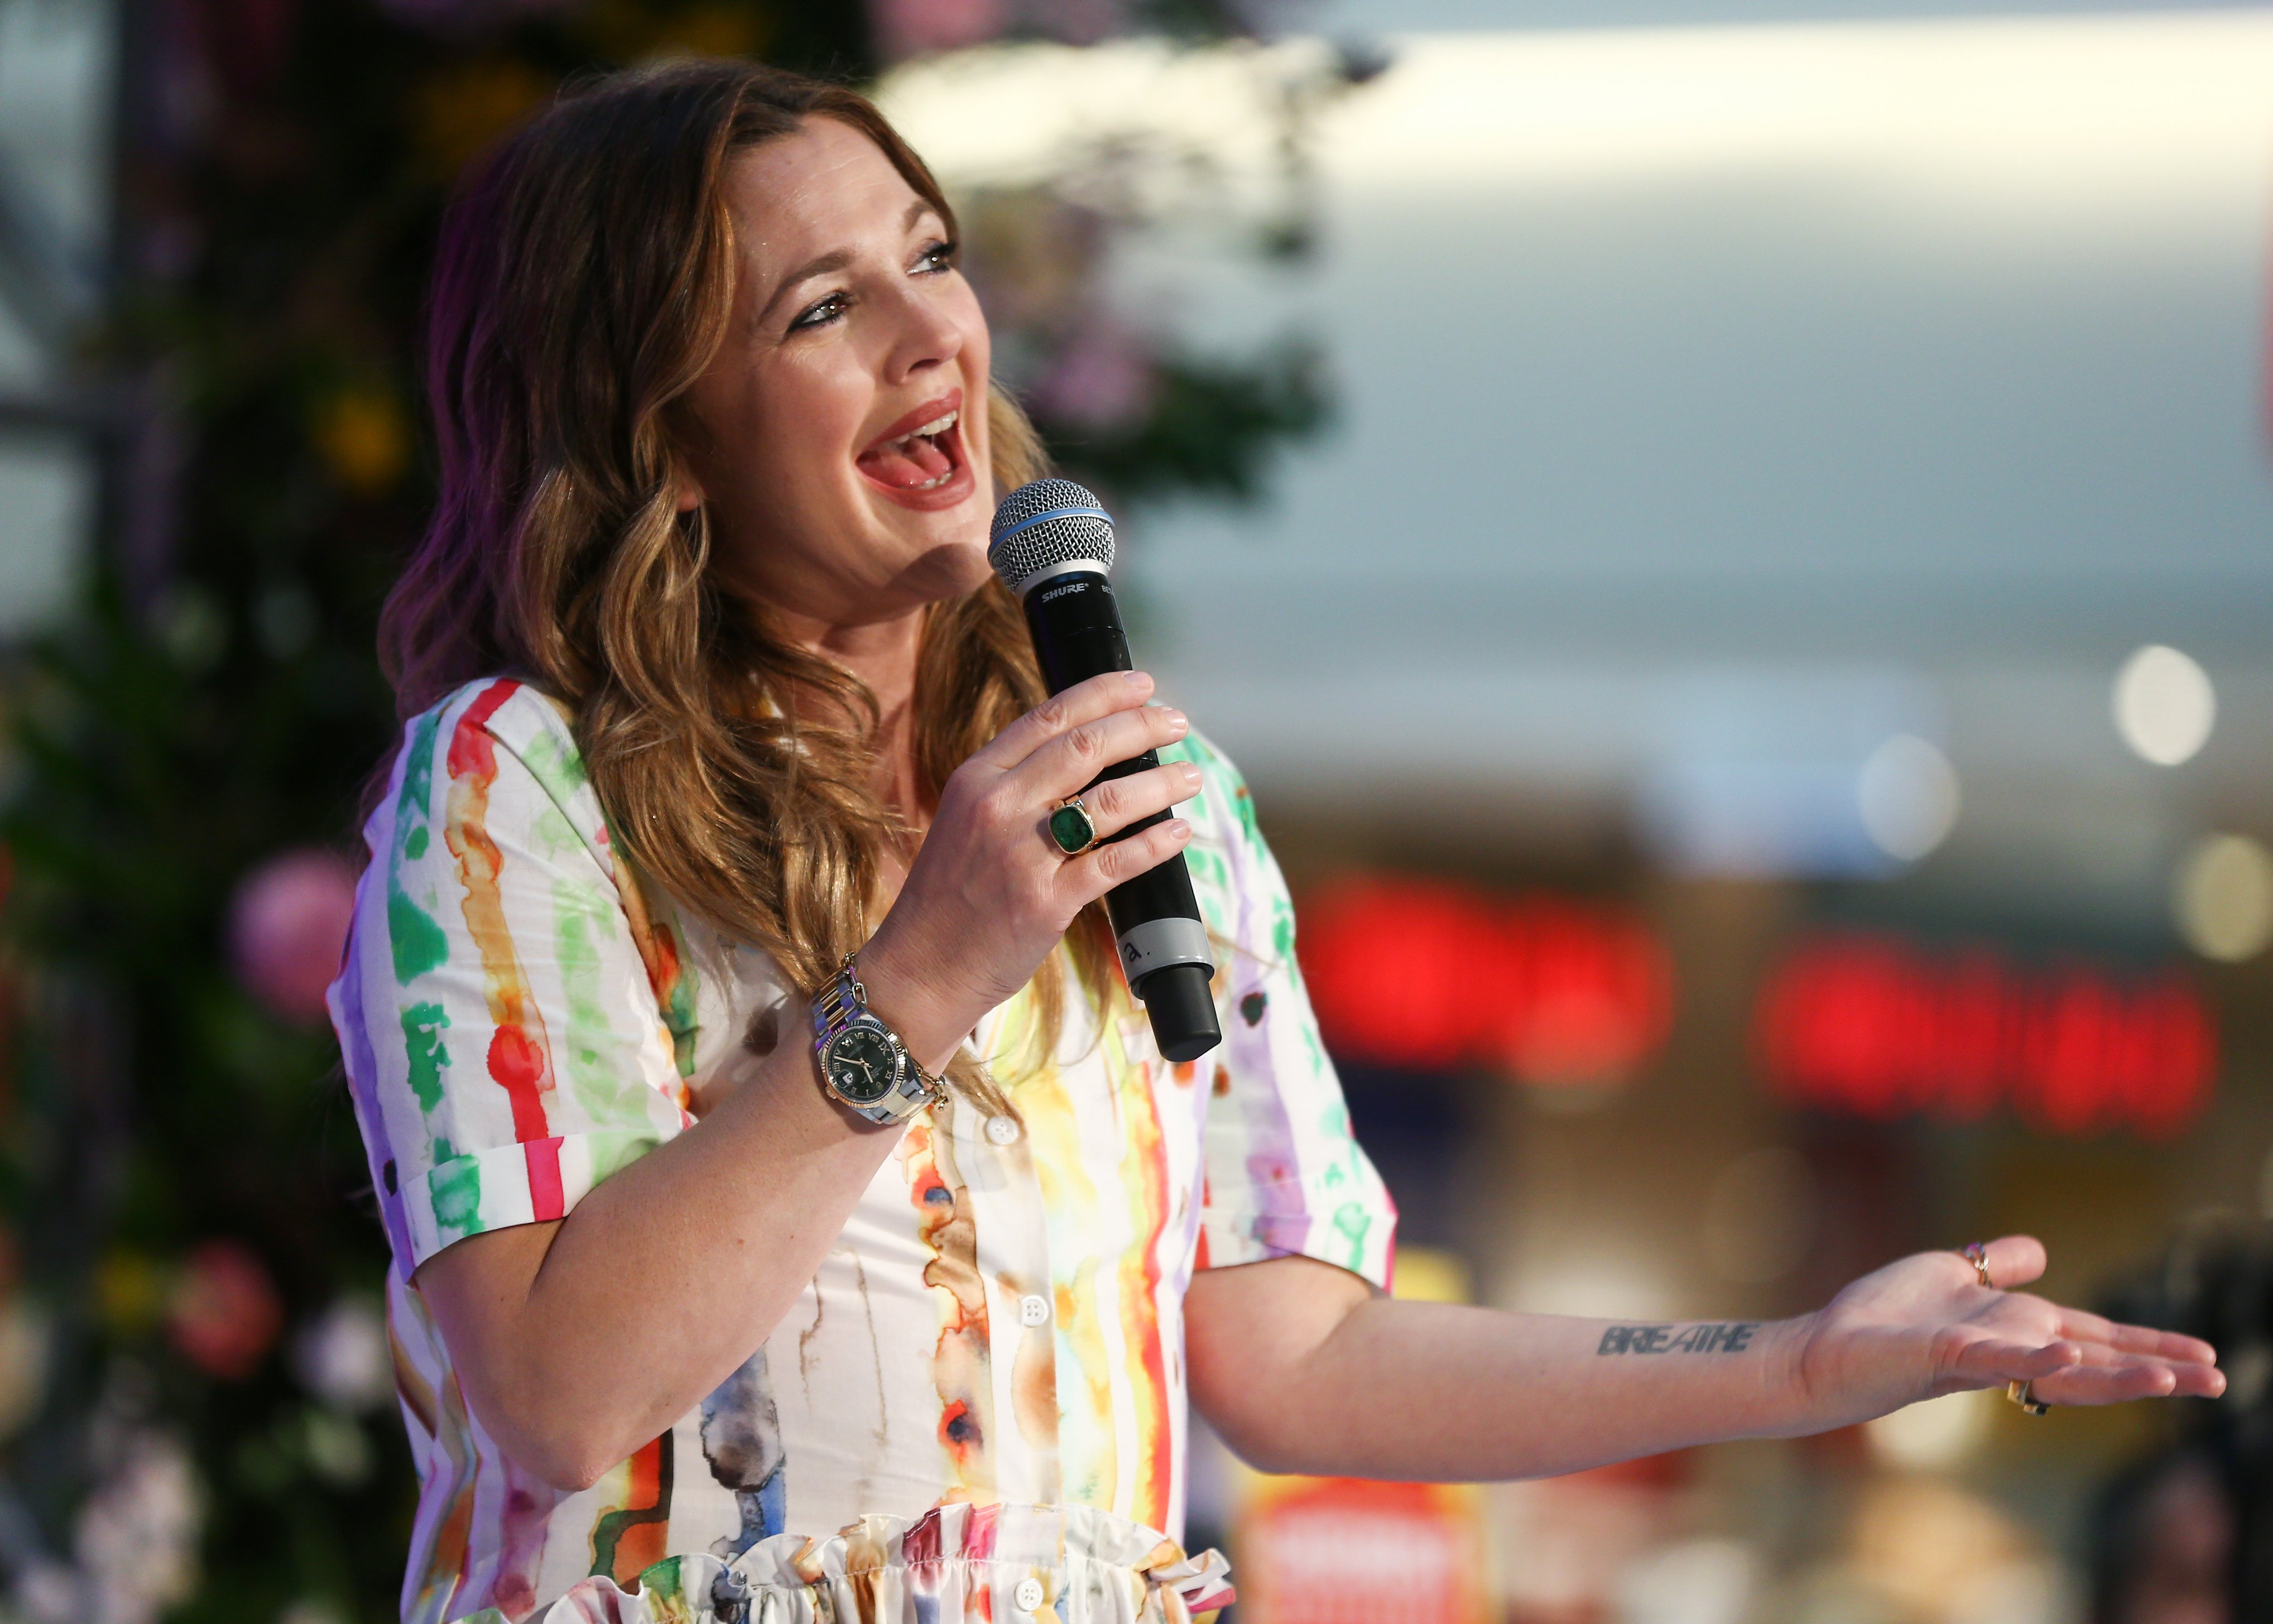 Drew Barrymore speaks at the FLOWER Beauty Launch in Sydney Australia on April 13, 2019 | Photo: Getty Images